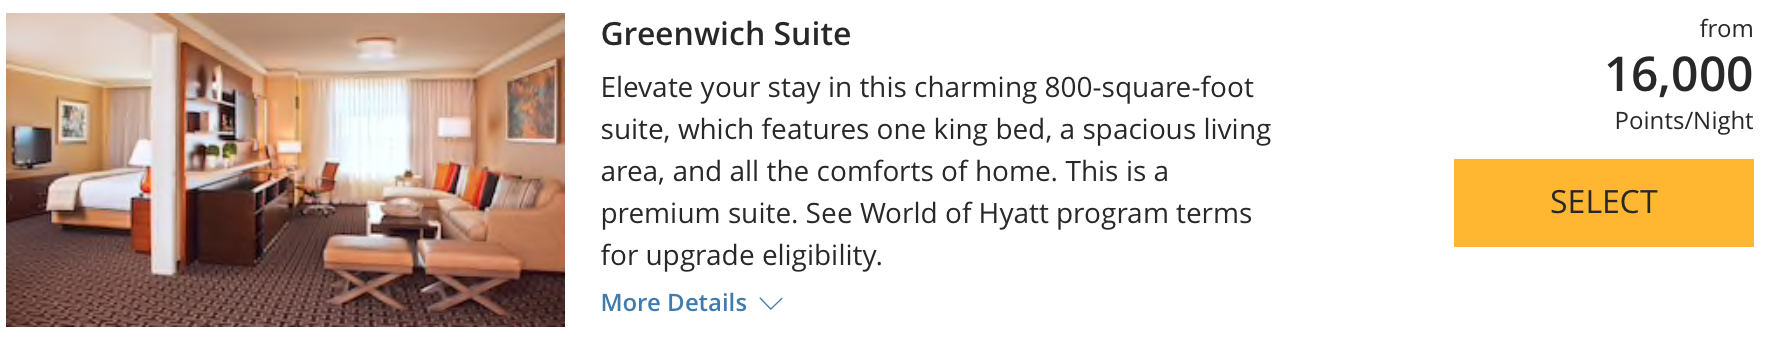 hyatt greenwich suite